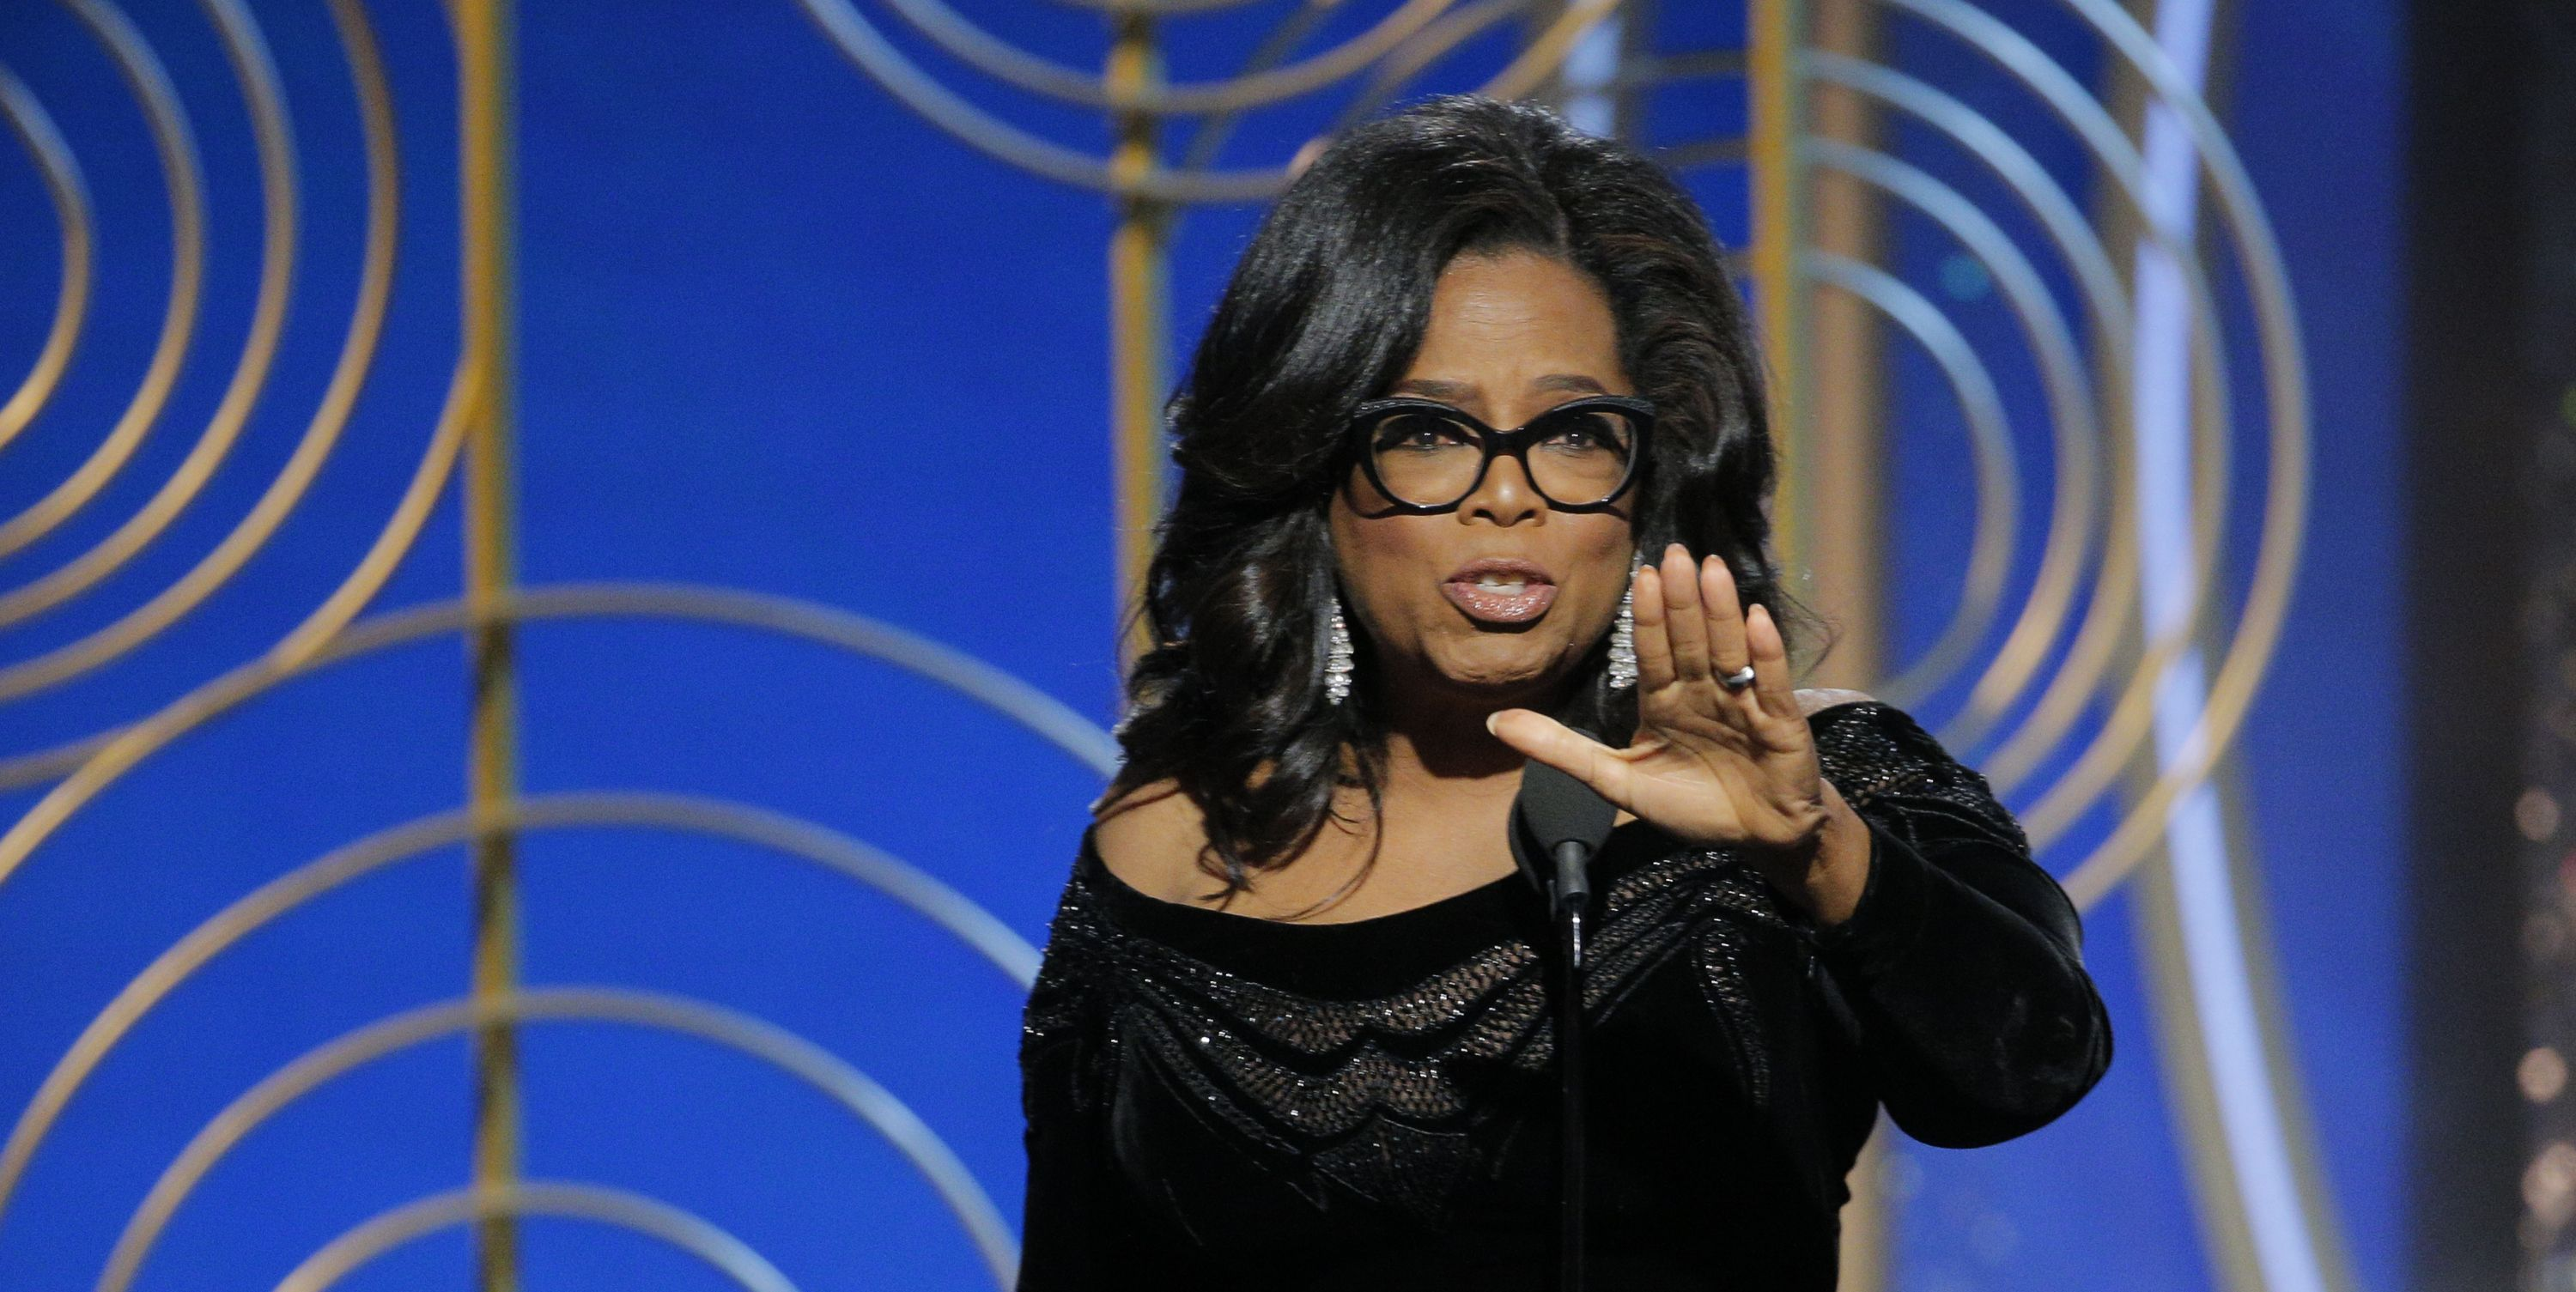 Oprah's Speech Was the Most Public Declaration of Hope We've Seen in Over a Year